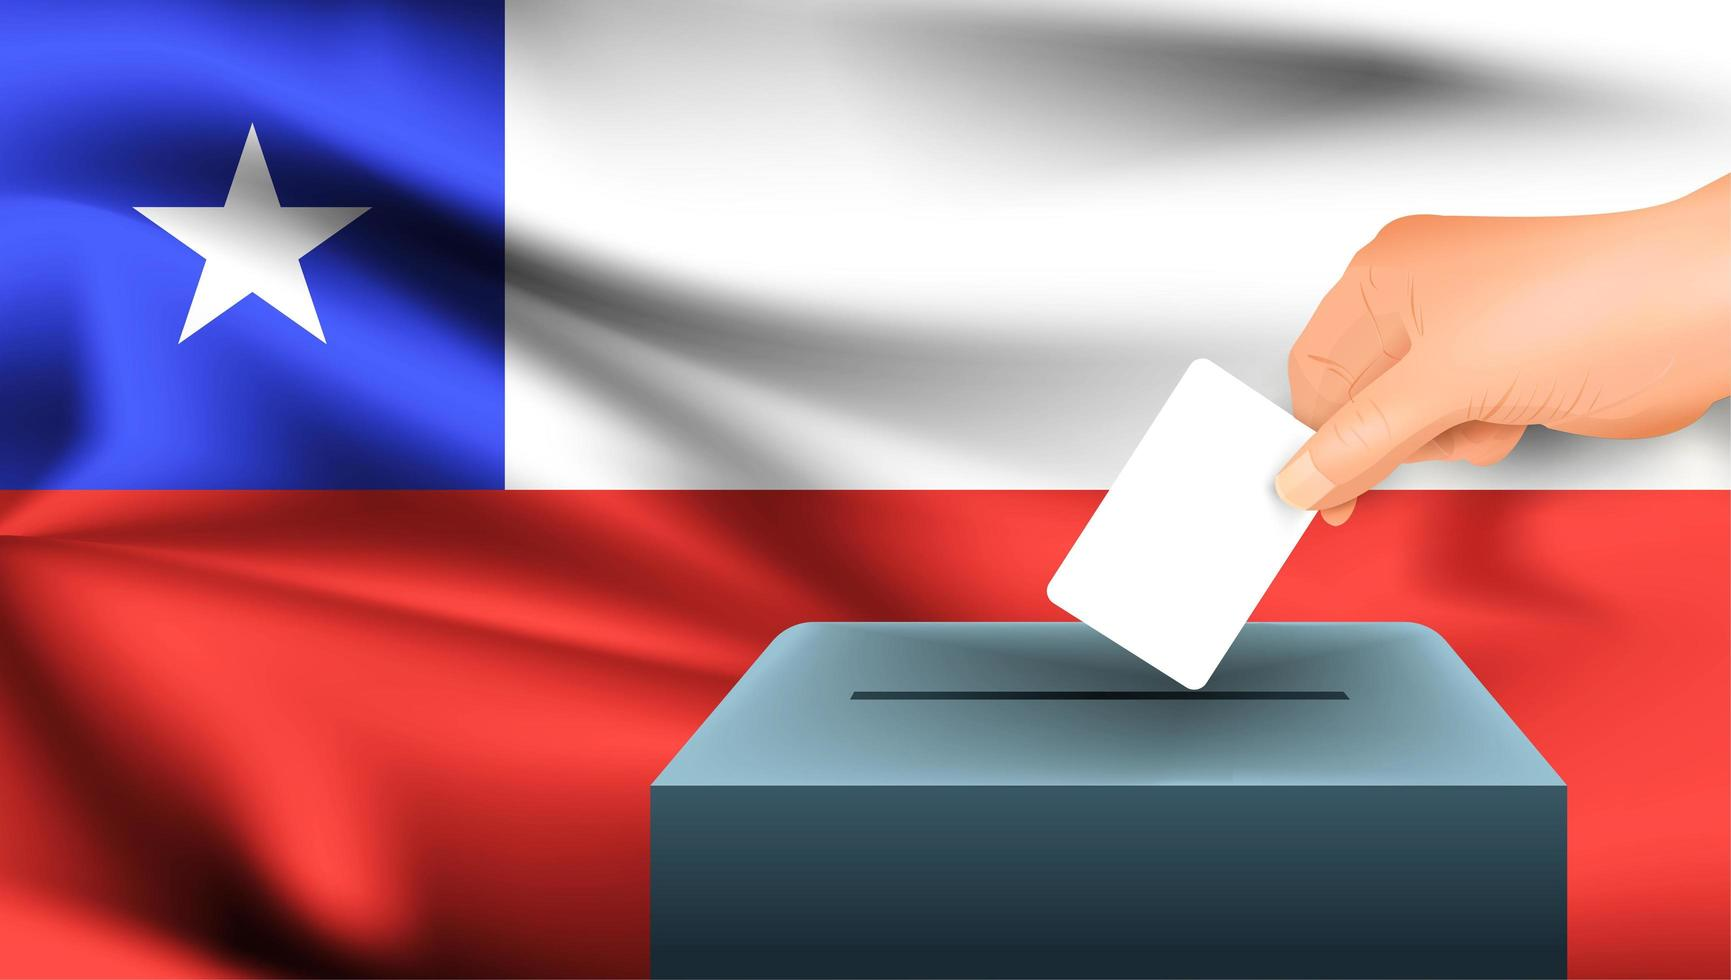 Hand putting ballot into box with Chilean flag  vector